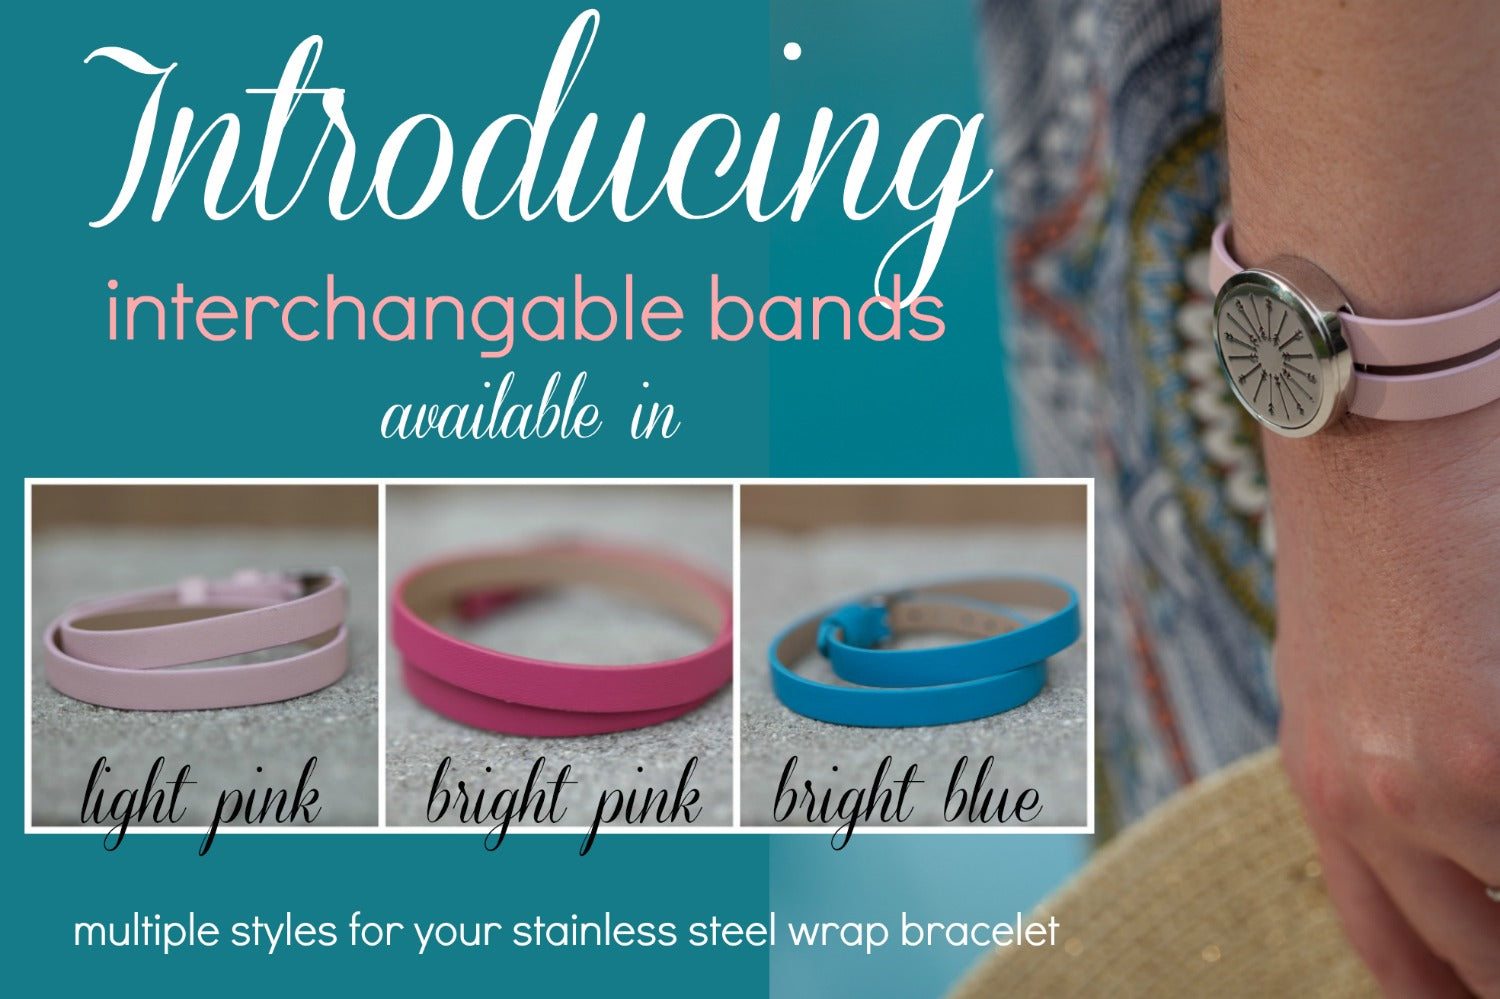 interchangeable bands for diffuser jewelry